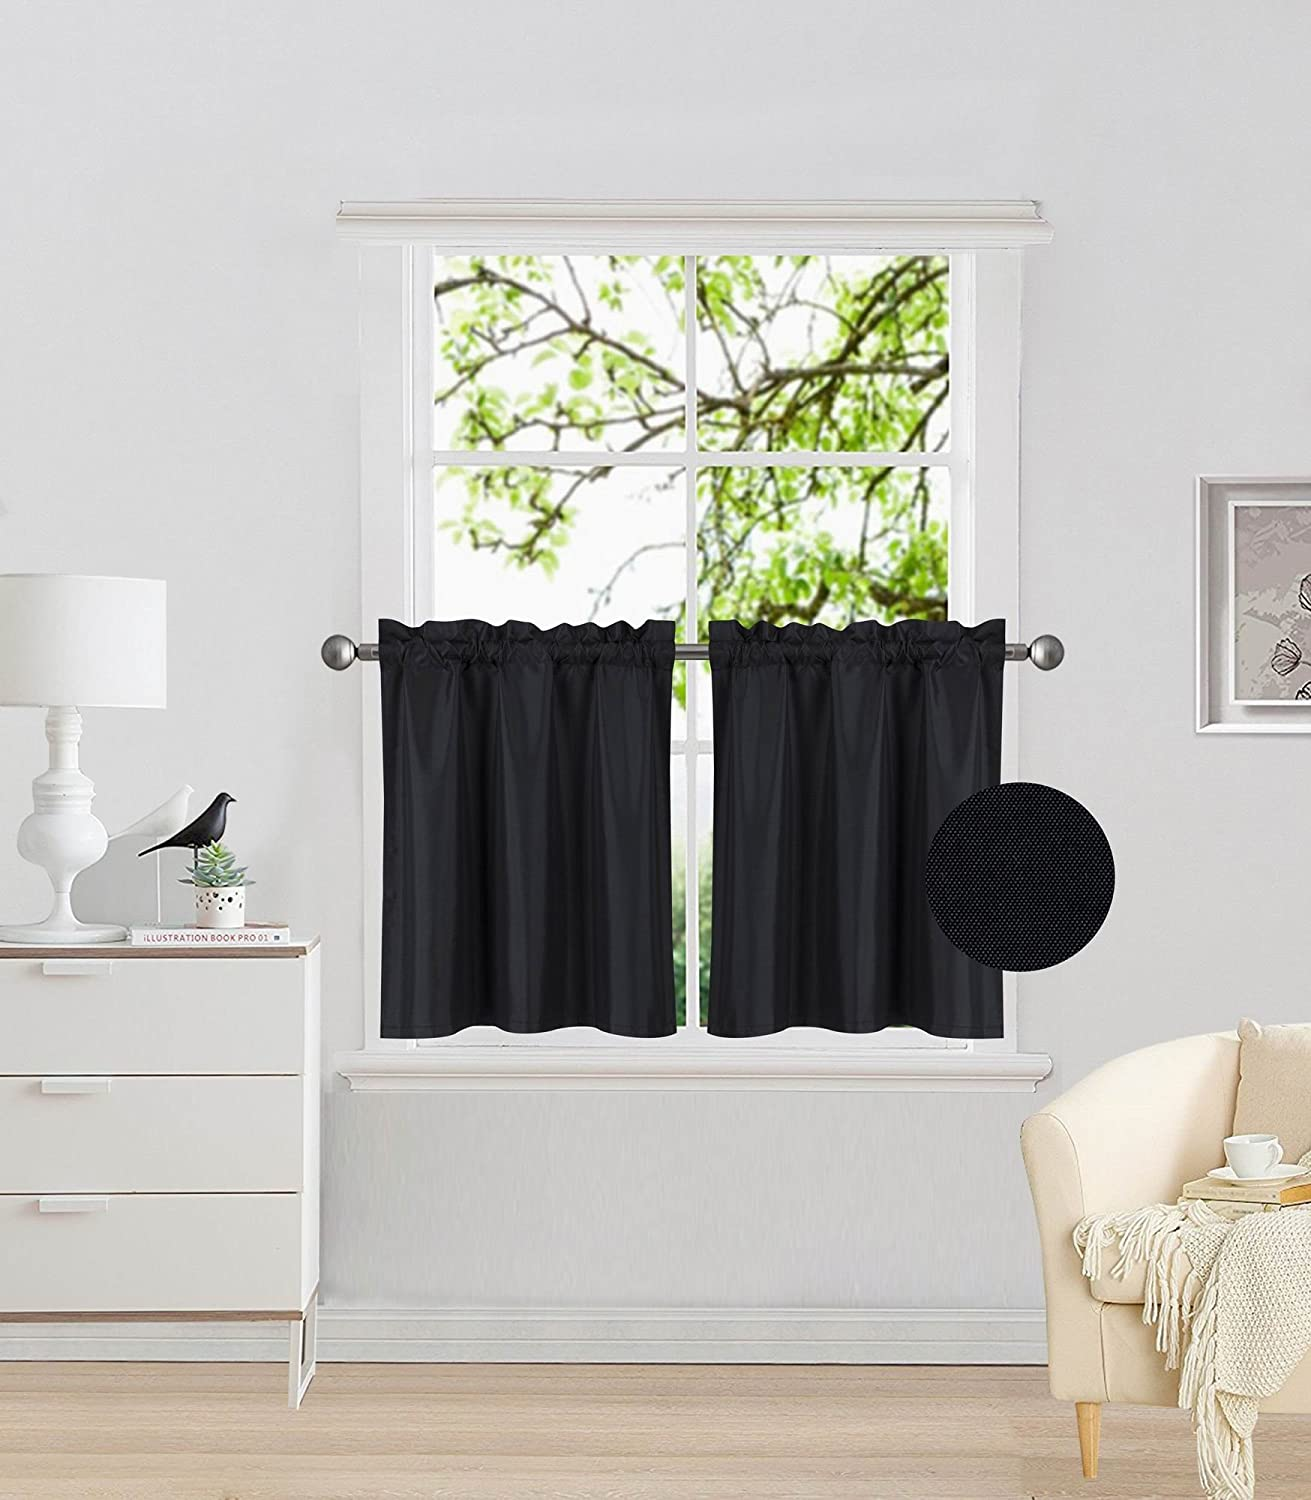 "Elegant Home 2 Panels Tiers Small Window Treatment Curtain Insulated Blackout Drape Short Panel 30"" W X 24"" L Each for Kitchen Bathroom or Any Small Window # R16 (Black)"